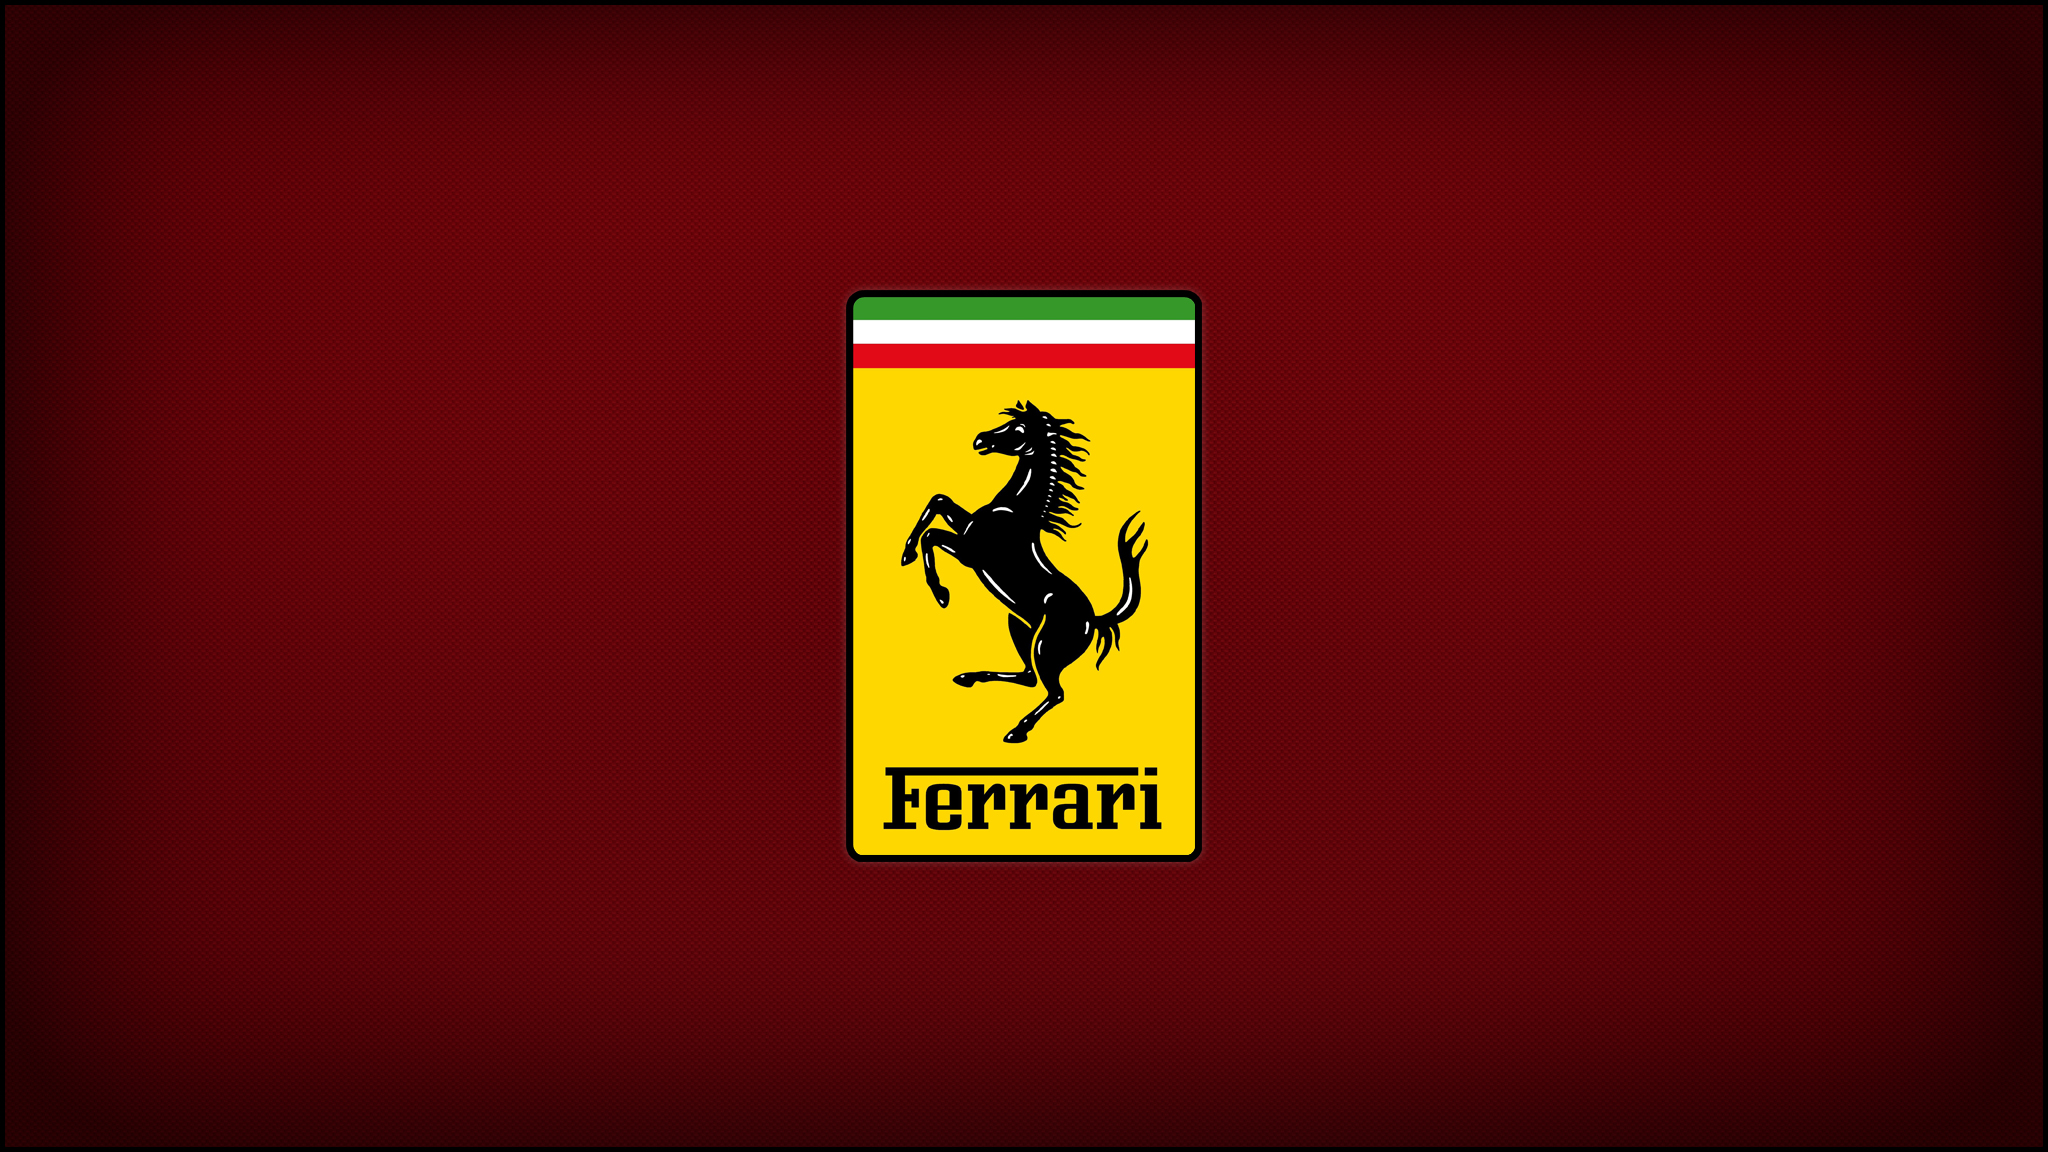 Ferrari Logo Red by ZIXTY on DeviantArt: zixty.deviantart.com/art/Ferrari-Logo-Red-163243068